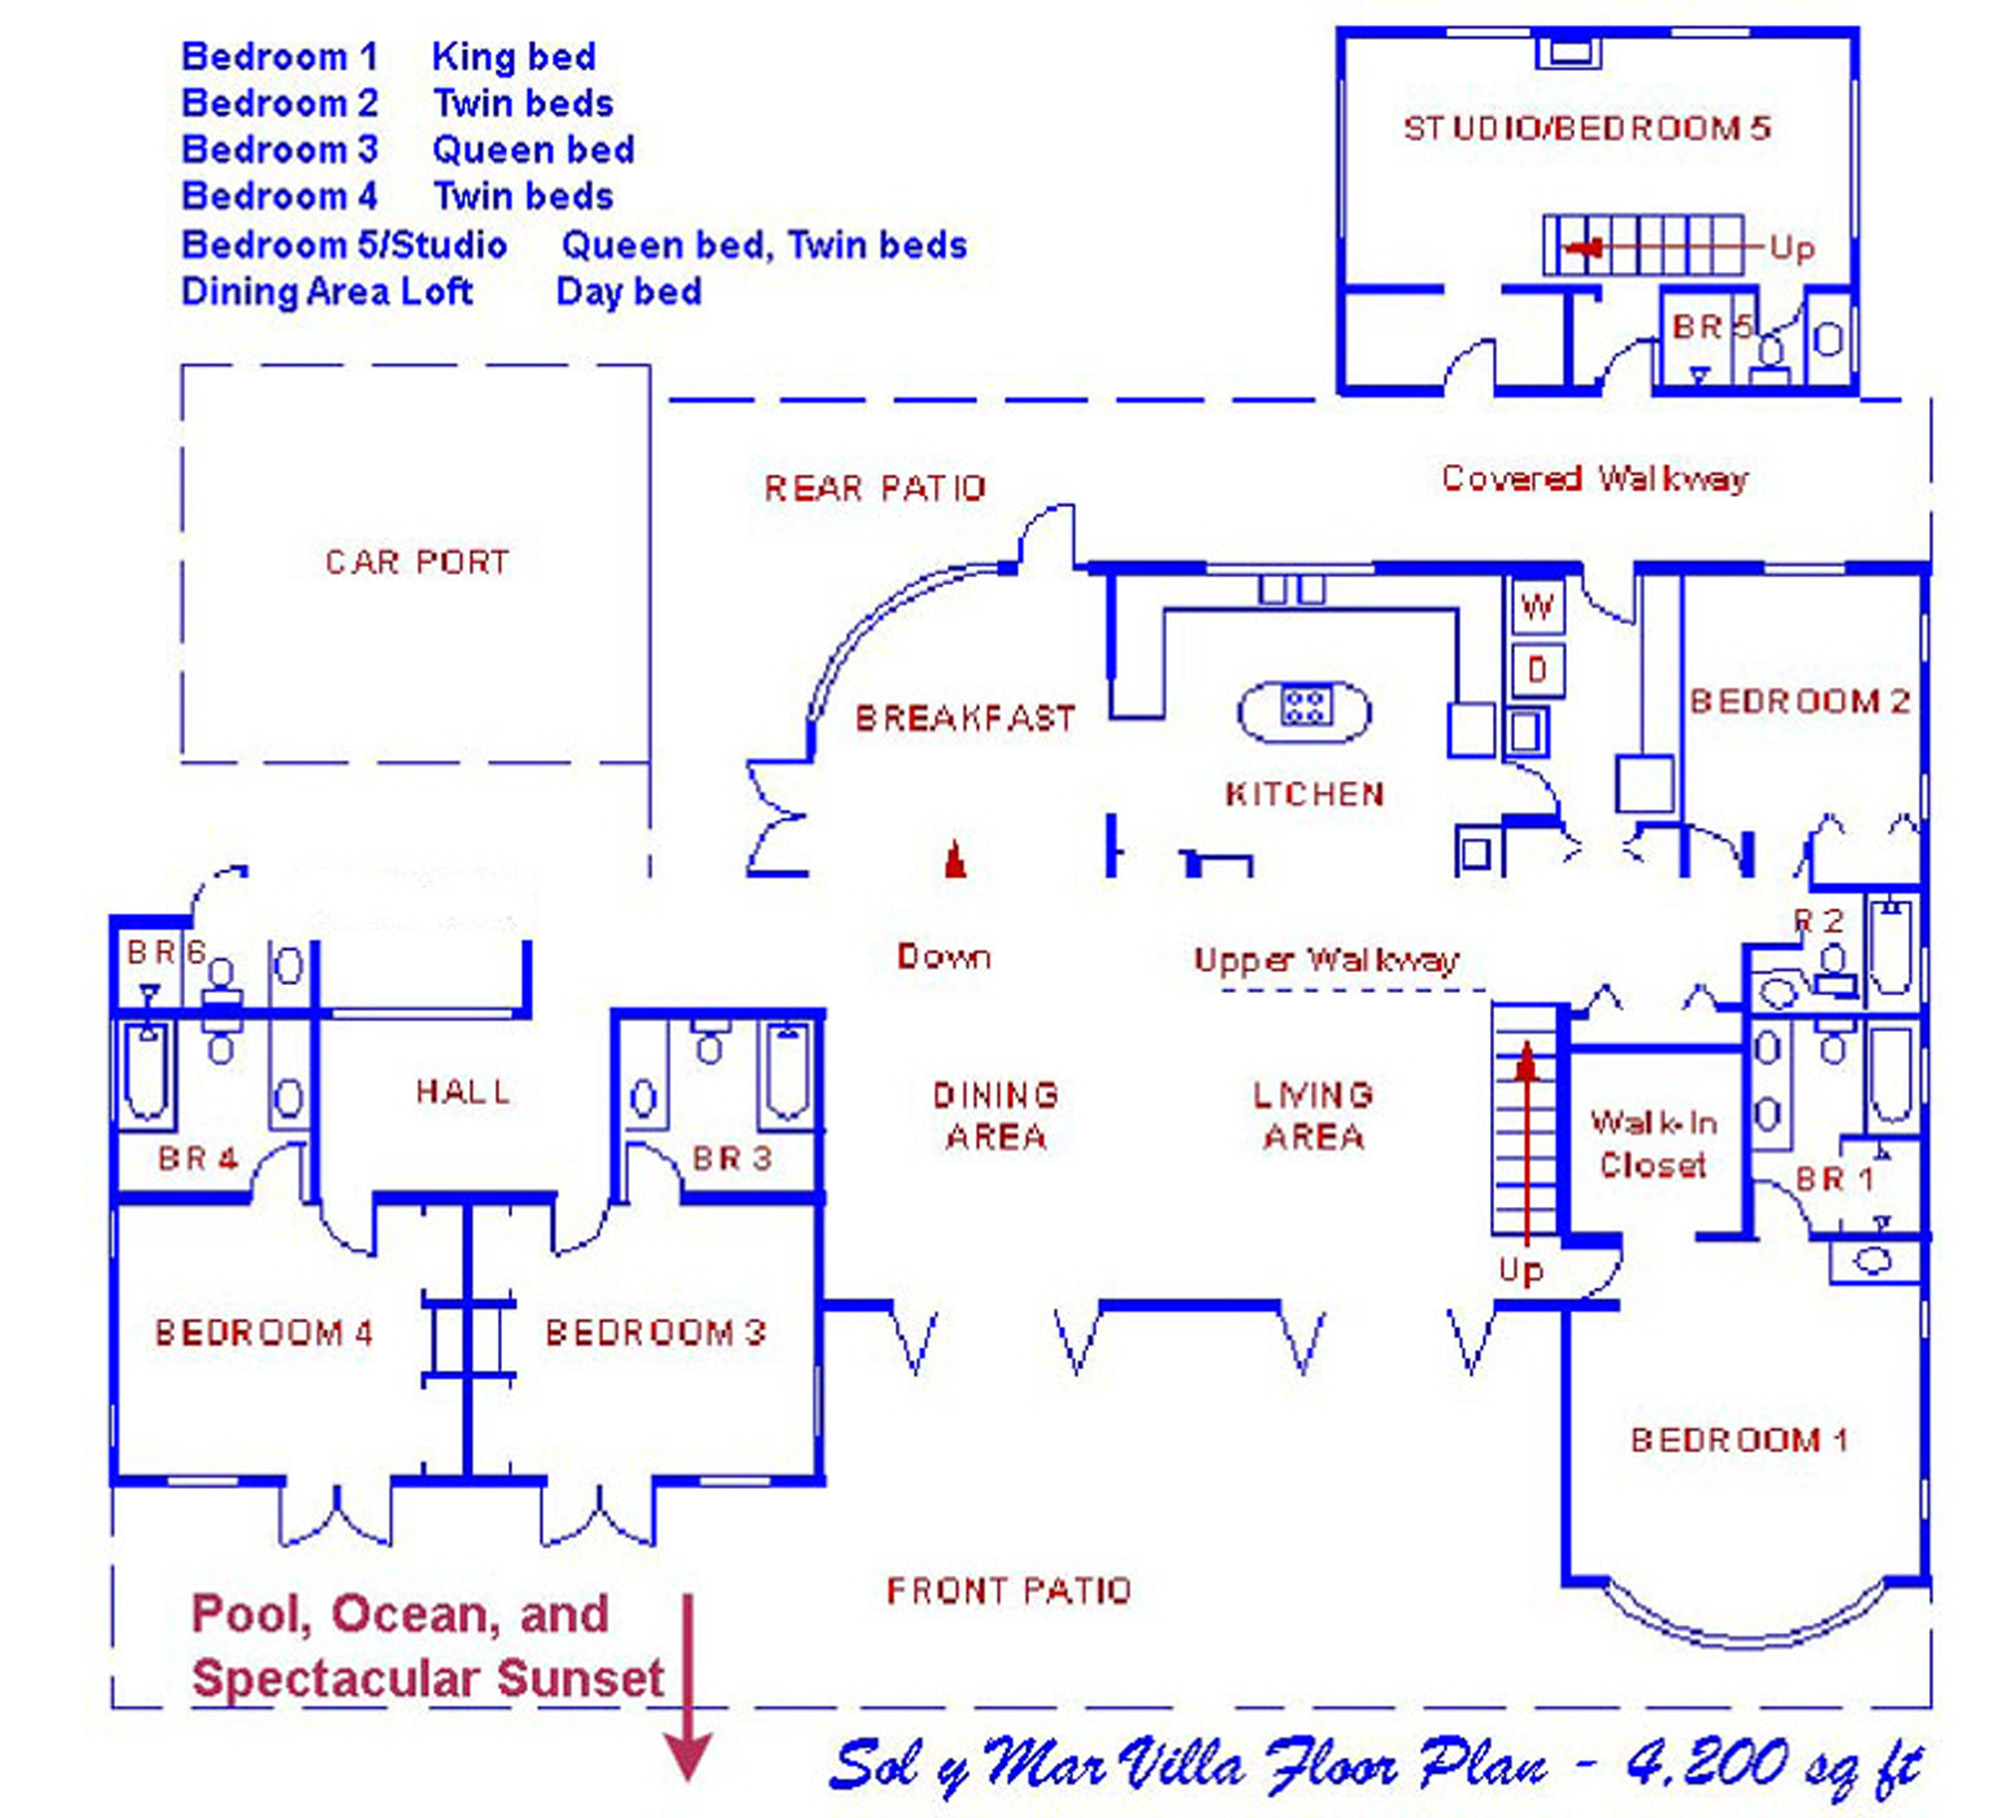 SOL Y MAR VILLA, TOBAGO W.I. Villa floor plan, plus bed types in each bedroom